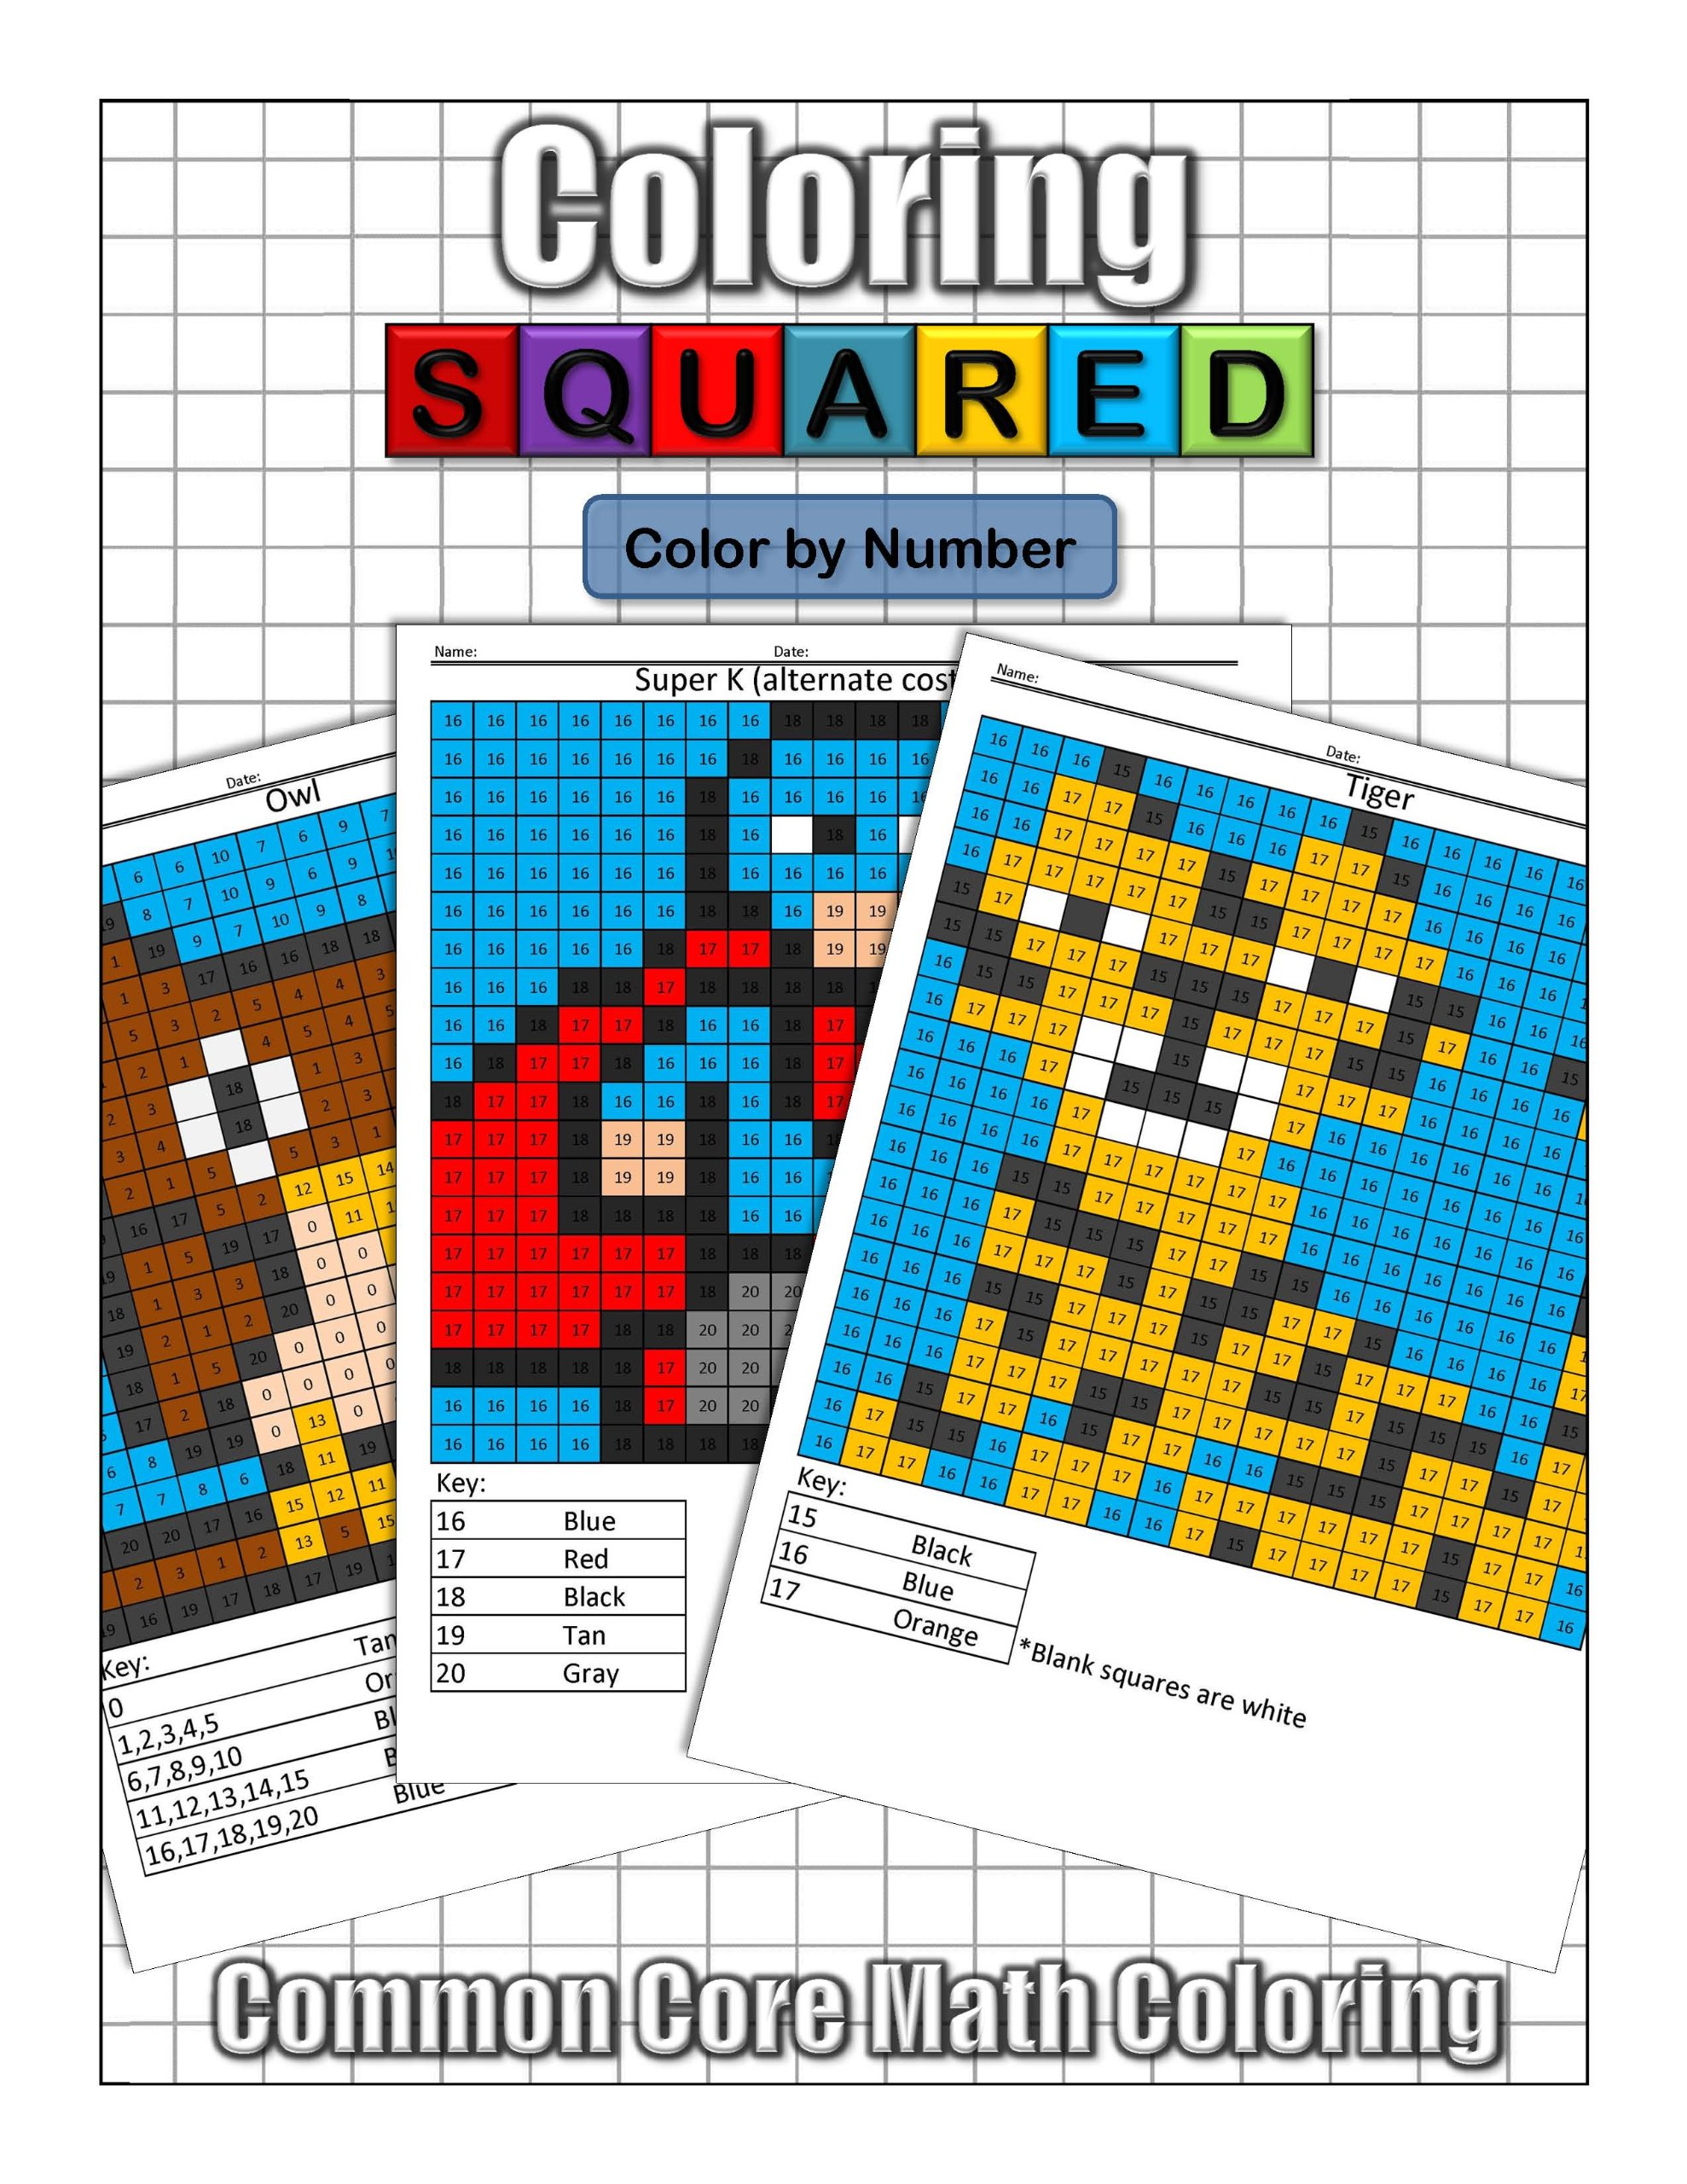 Coloring Squared: Color by Number: Cameron Krantzman: 9781939668097 ...